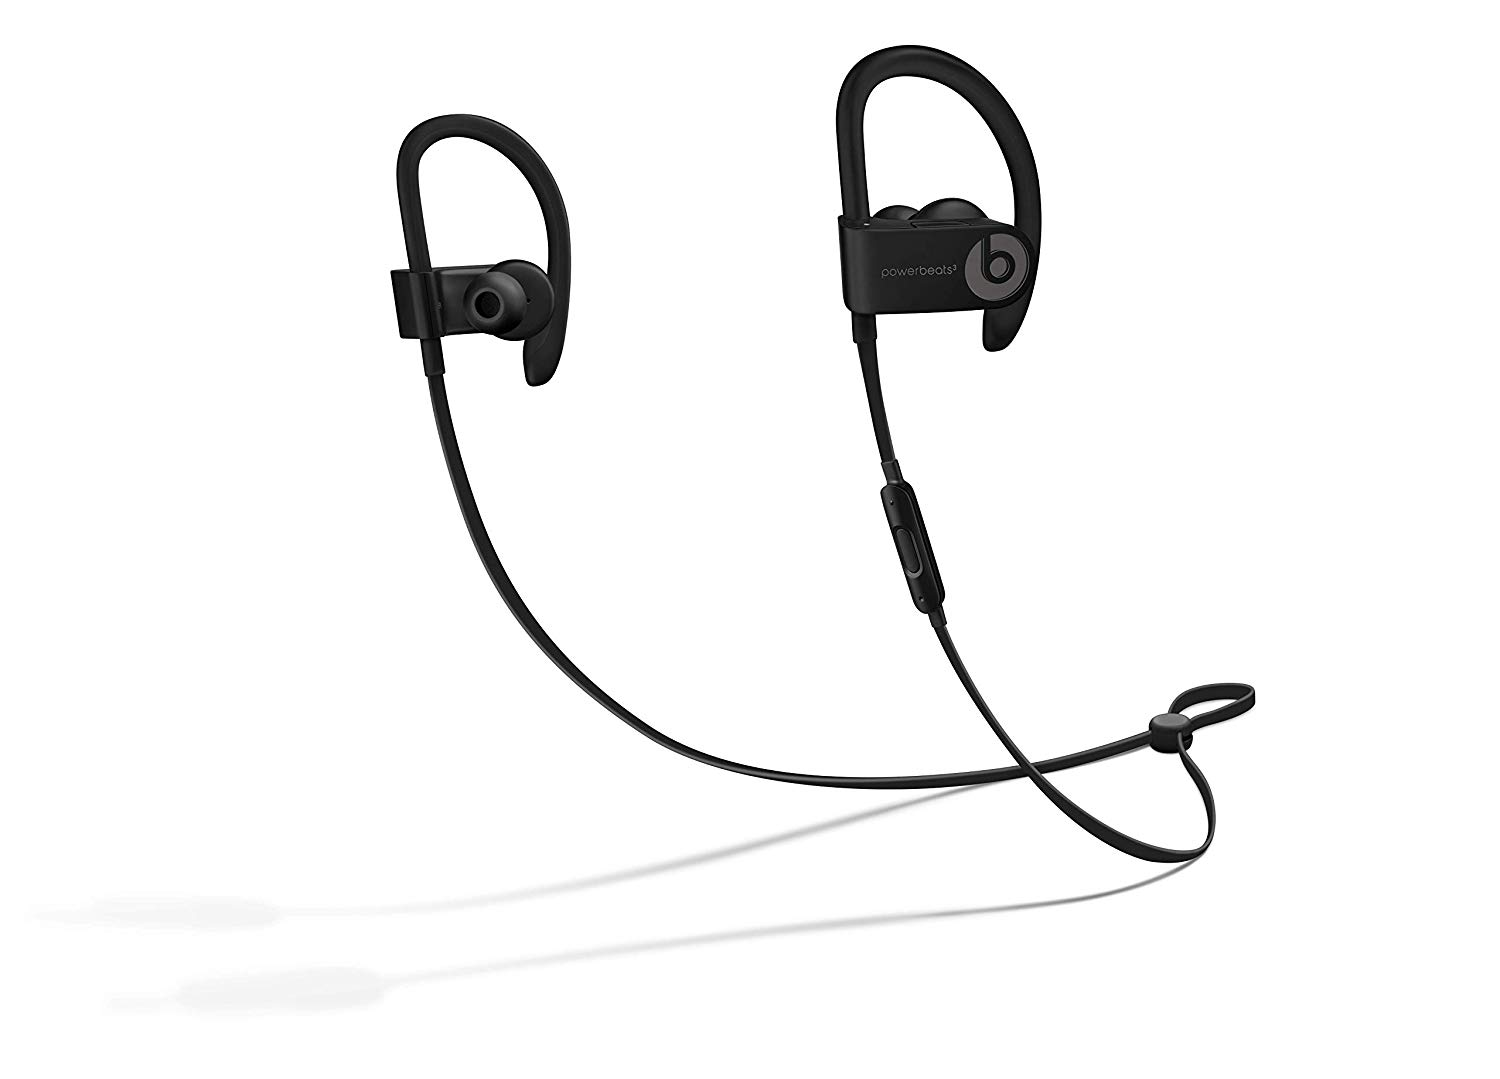 34a2e116f7e Elgeo Corp: Powerbeats3 Wireless In-Ear Headphones - Black | Rakuten.com